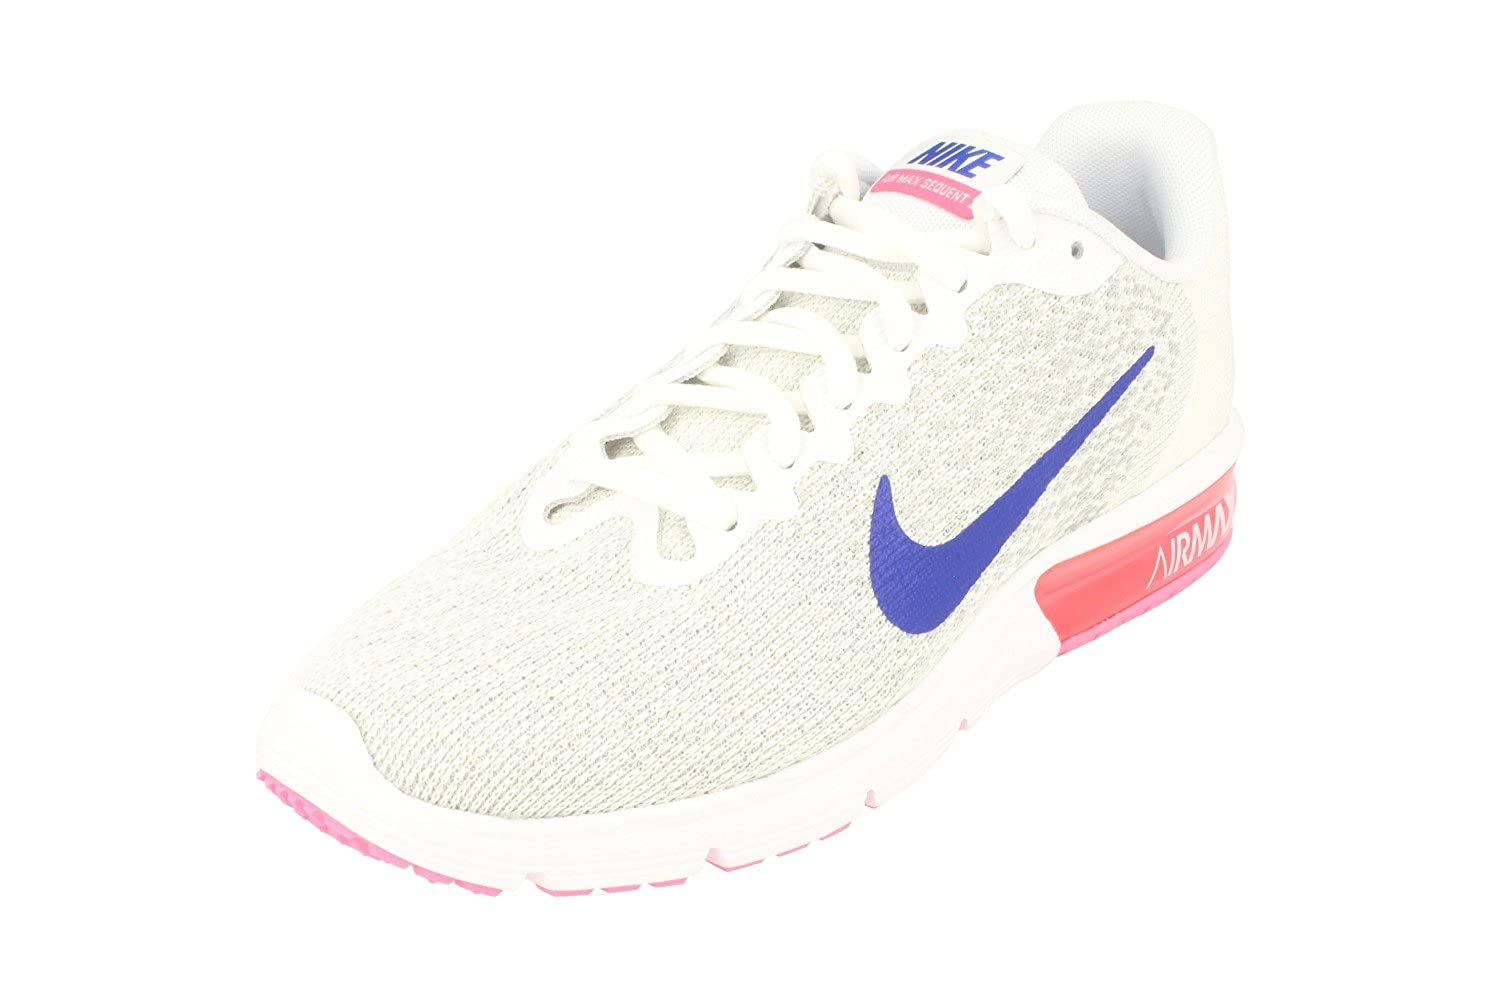 a24dda340b Amazon.com | NIKE Womens Air Max Sequent 2 Running Trainers 852465 Sneakers  Shoes (UK 3.5 US 6 EU 36.5, White Concord Laser Pink 146) | Road Running